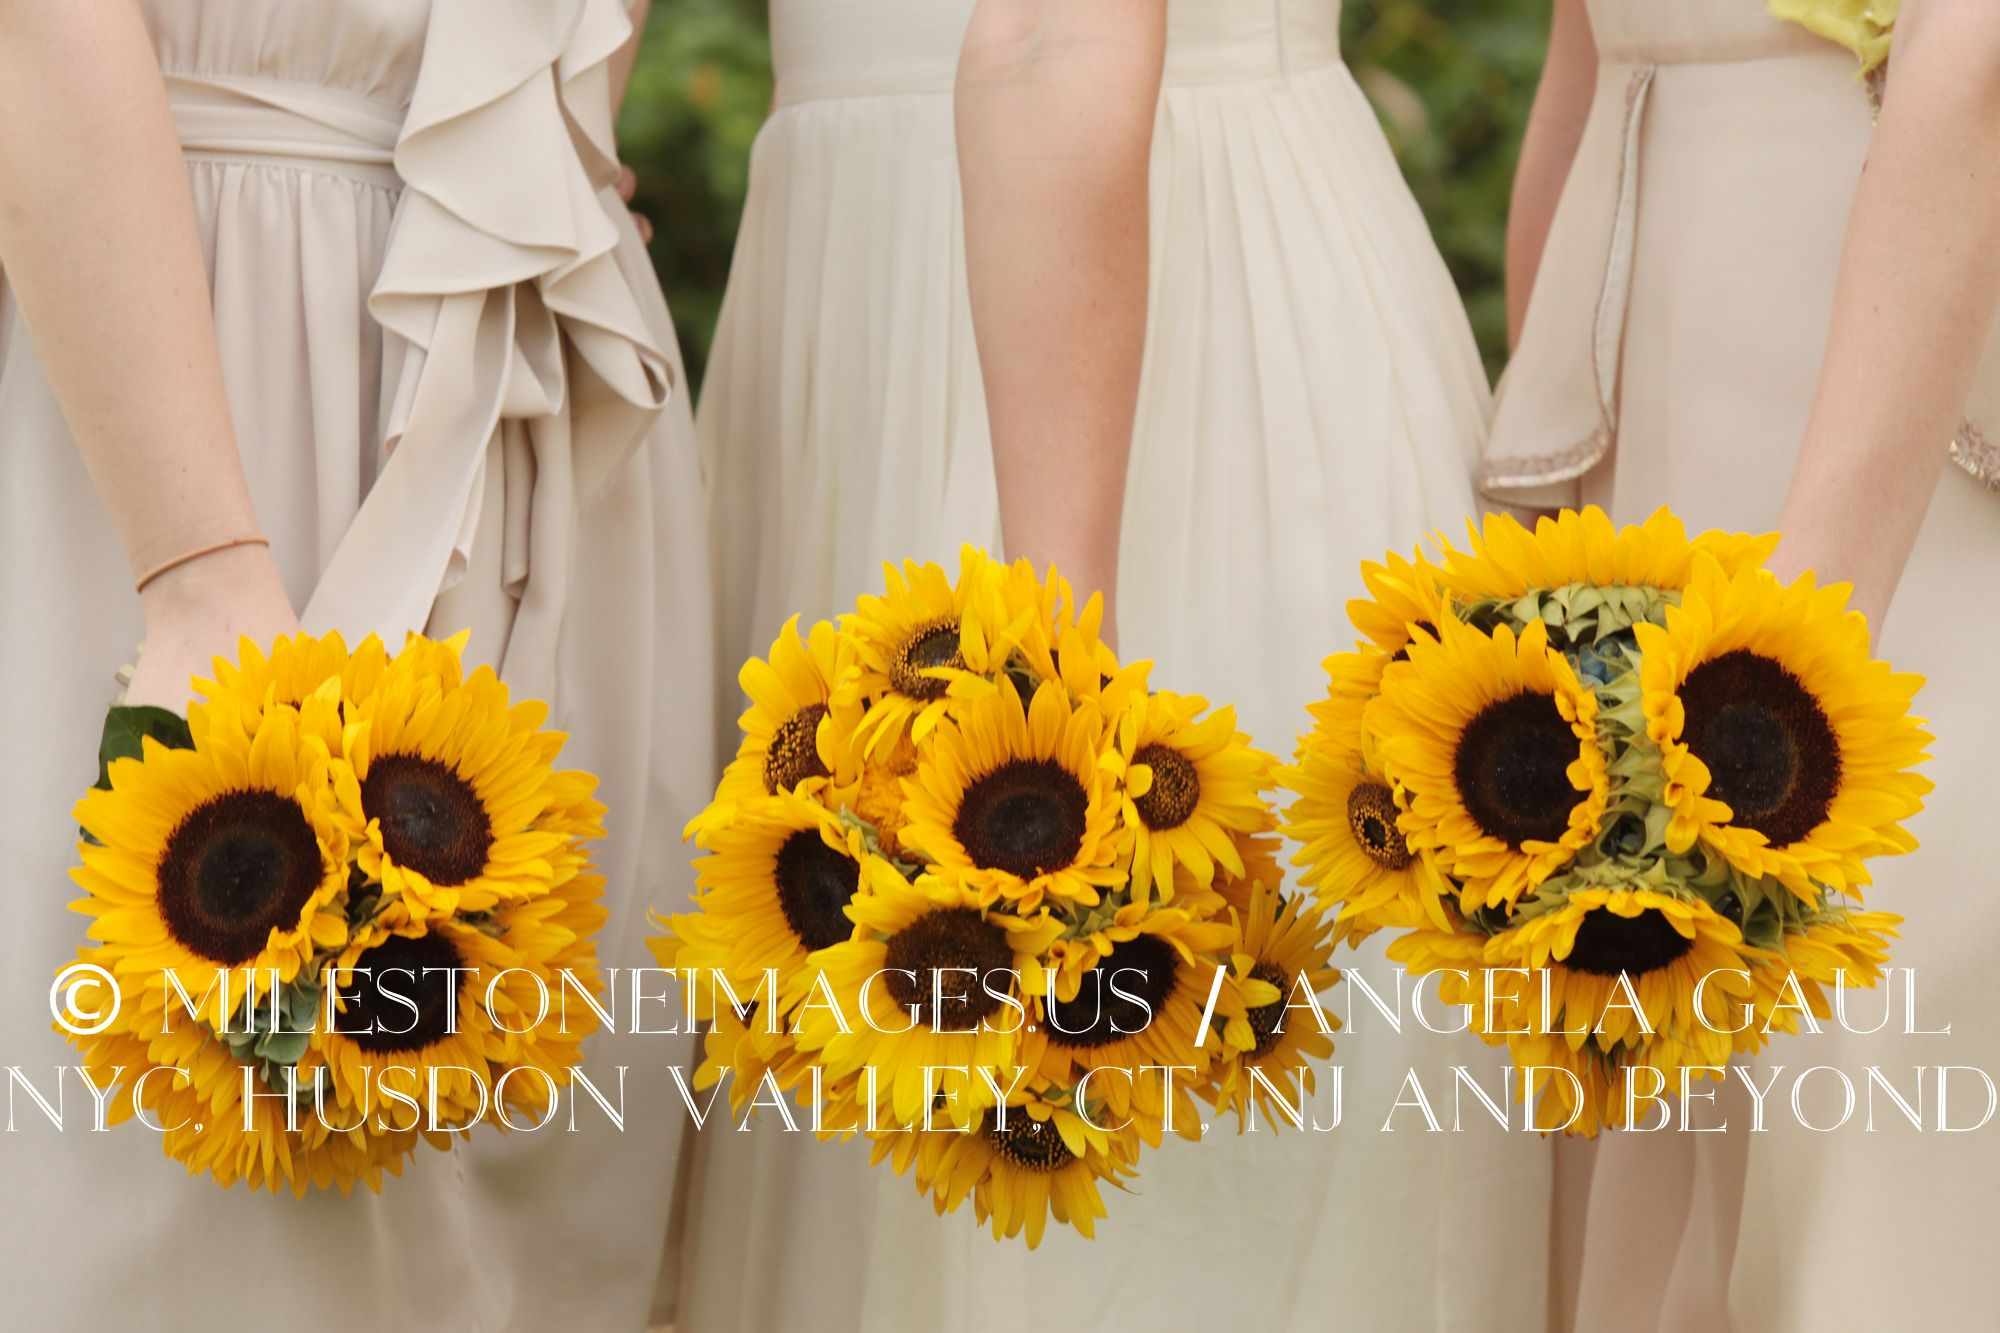 Bridesmaid Bouquets Sunflowers : Sunflower bridesmaid bouquets real wedding and